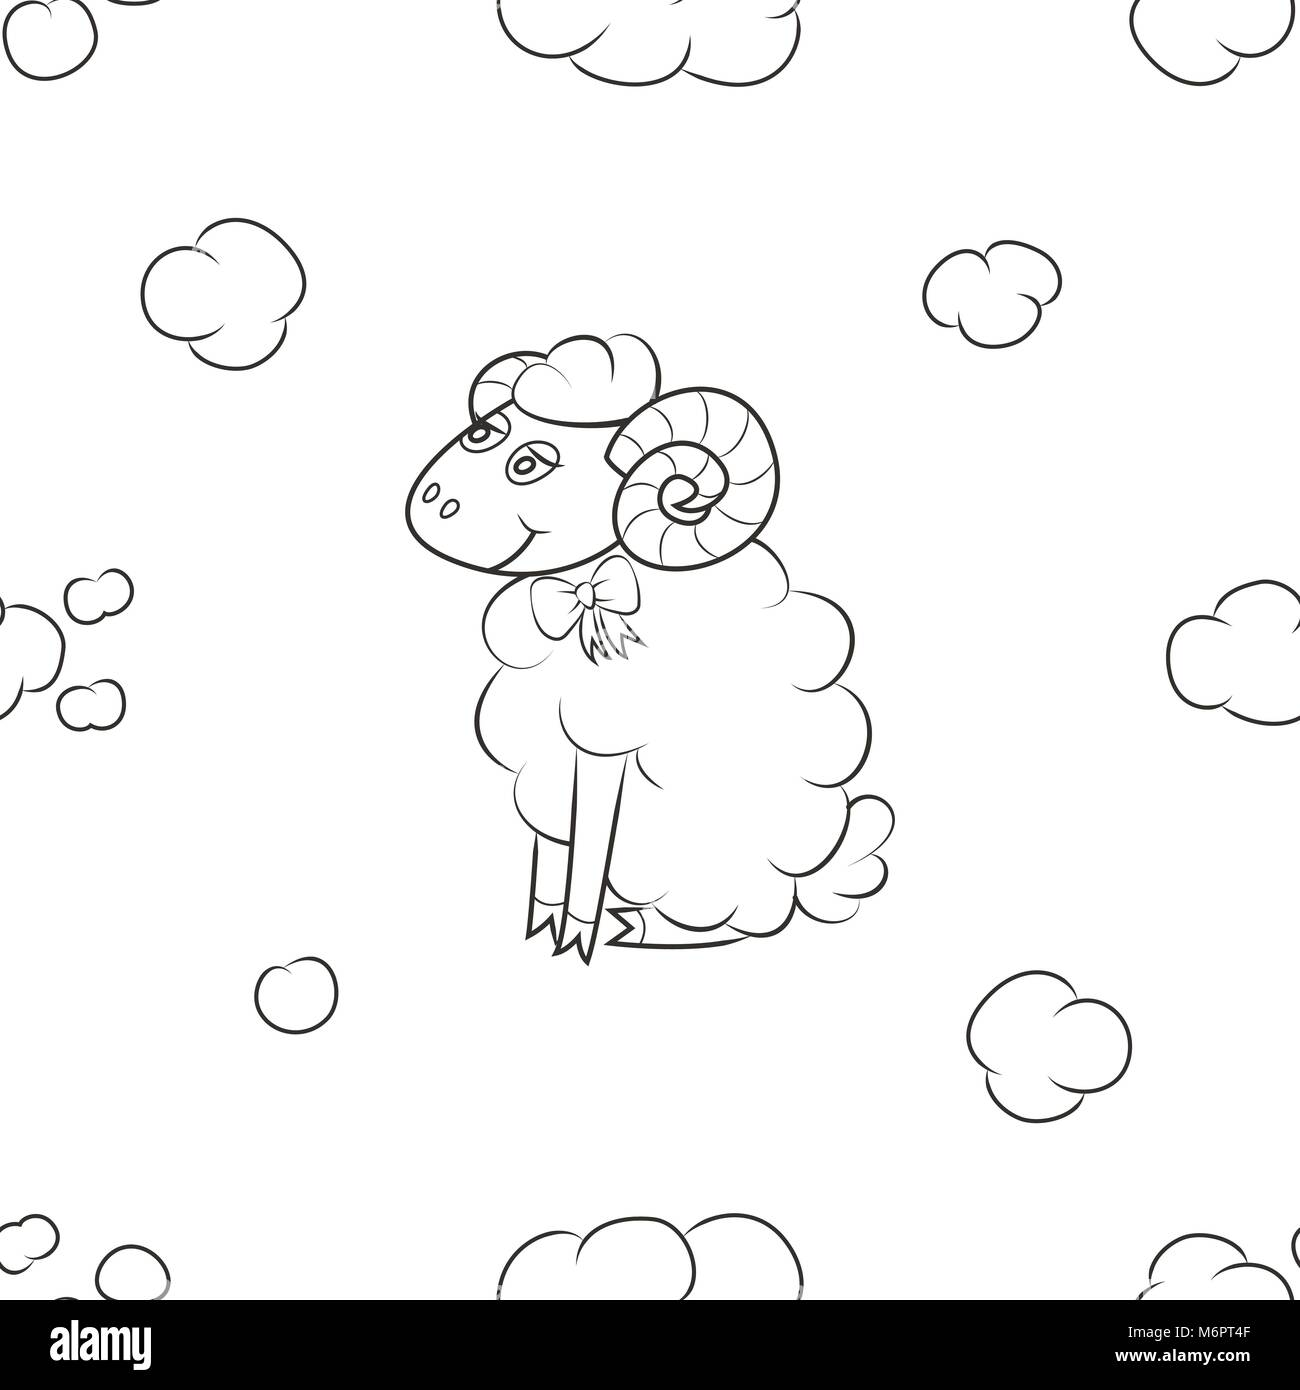 Sheep fly in the sky. - Stock Vector